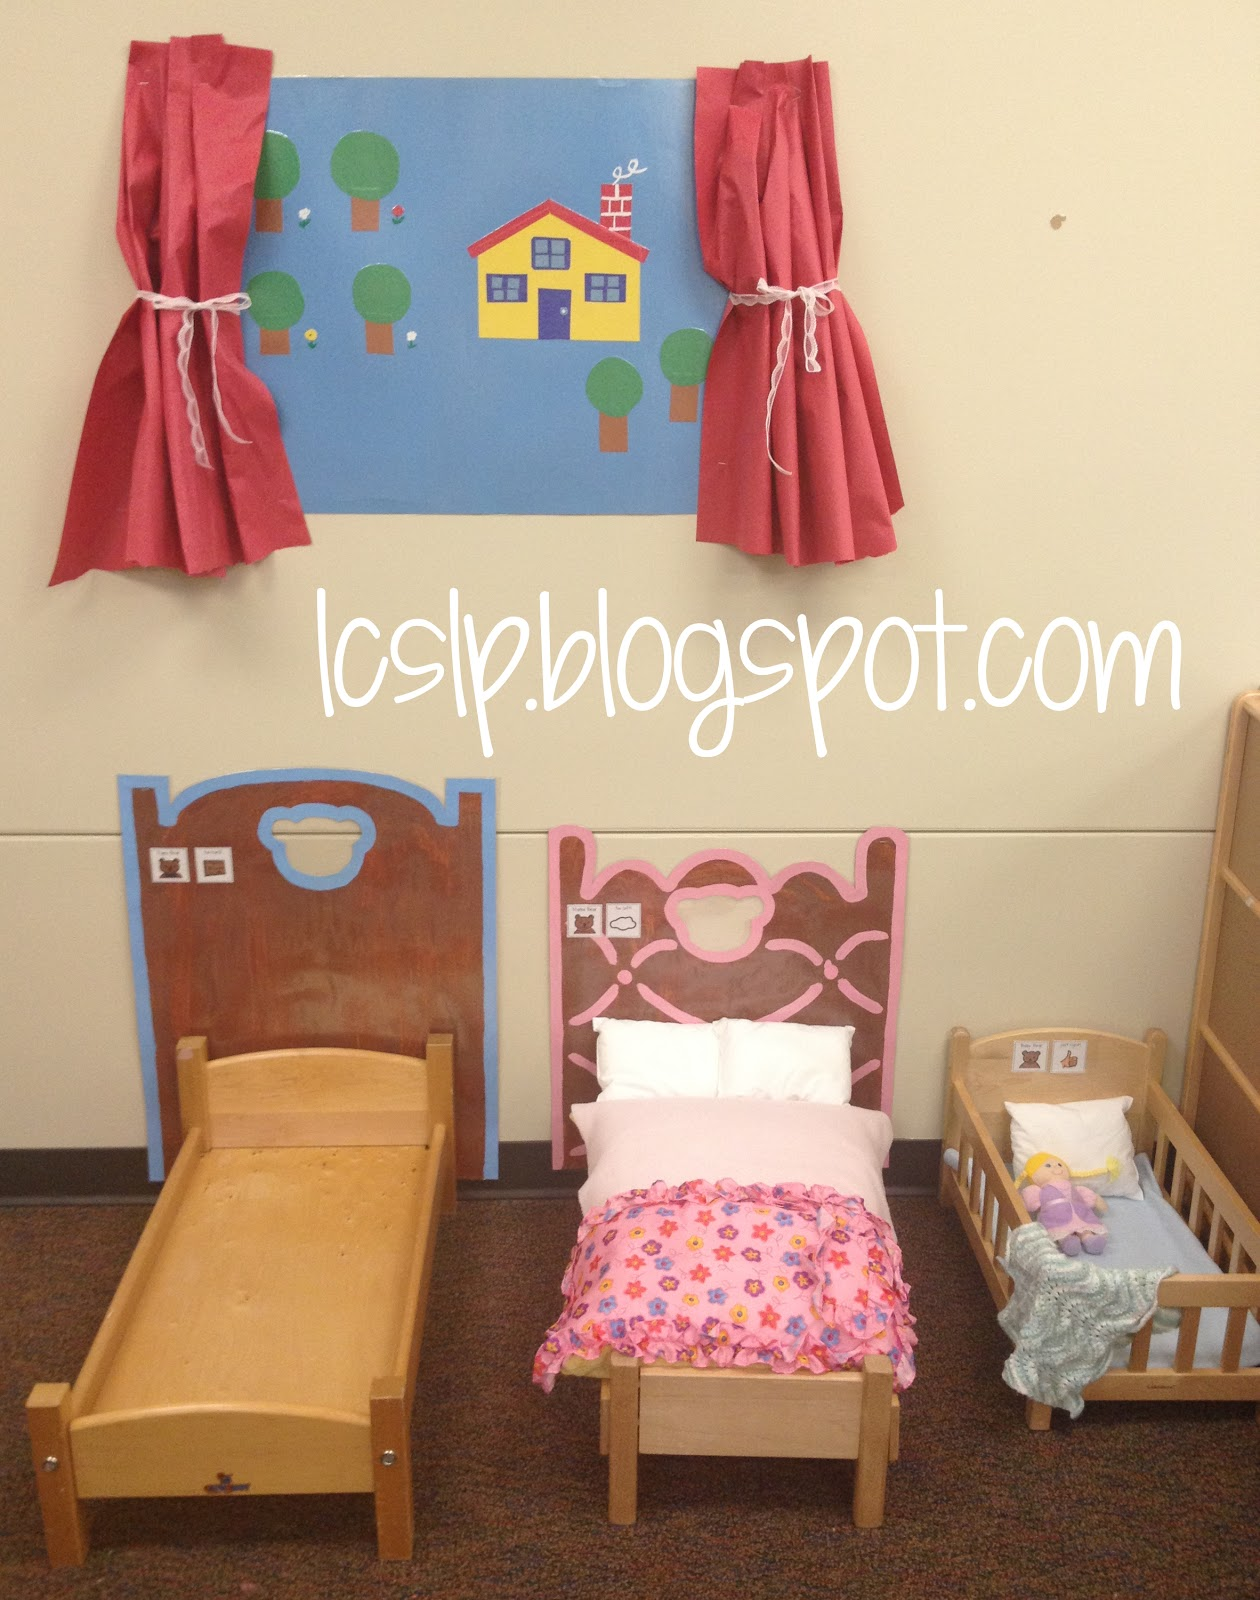 Uncategorized Goldilocks Bed l c slp goldilocks and the three bears on one side of center we set up papa mama baby beds i painted headboards onto posterboard laminated them with visuals for their